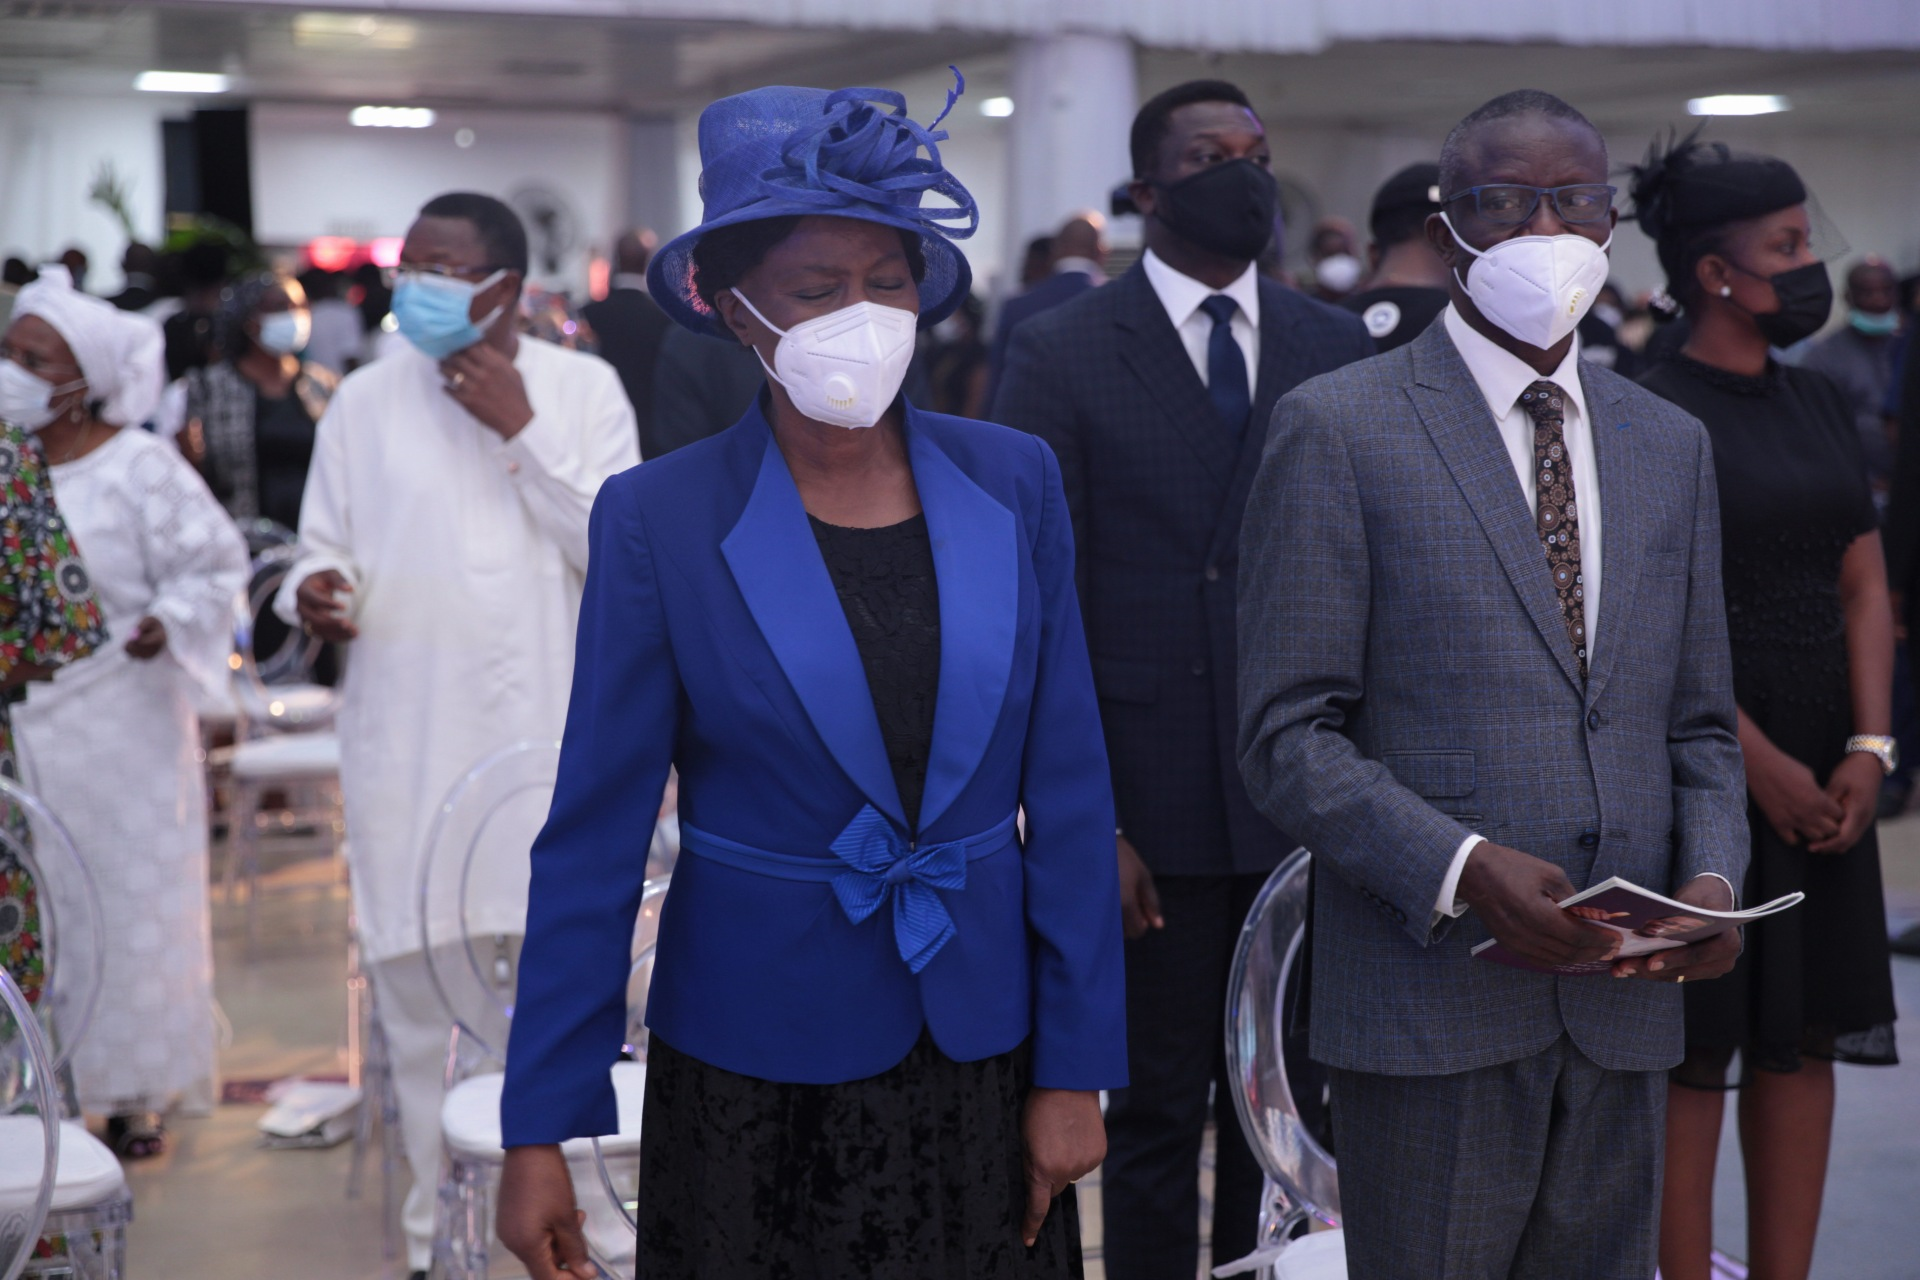 GueNational President of the Pentecostal Fellowship of Nigeria, Bishop Francis Wale Oke and wife, Victoria Tokunbo at the farewell service at the Youth Centre, Redemption Campsts at the farewell service at the Youth Centre, Redemption Camp